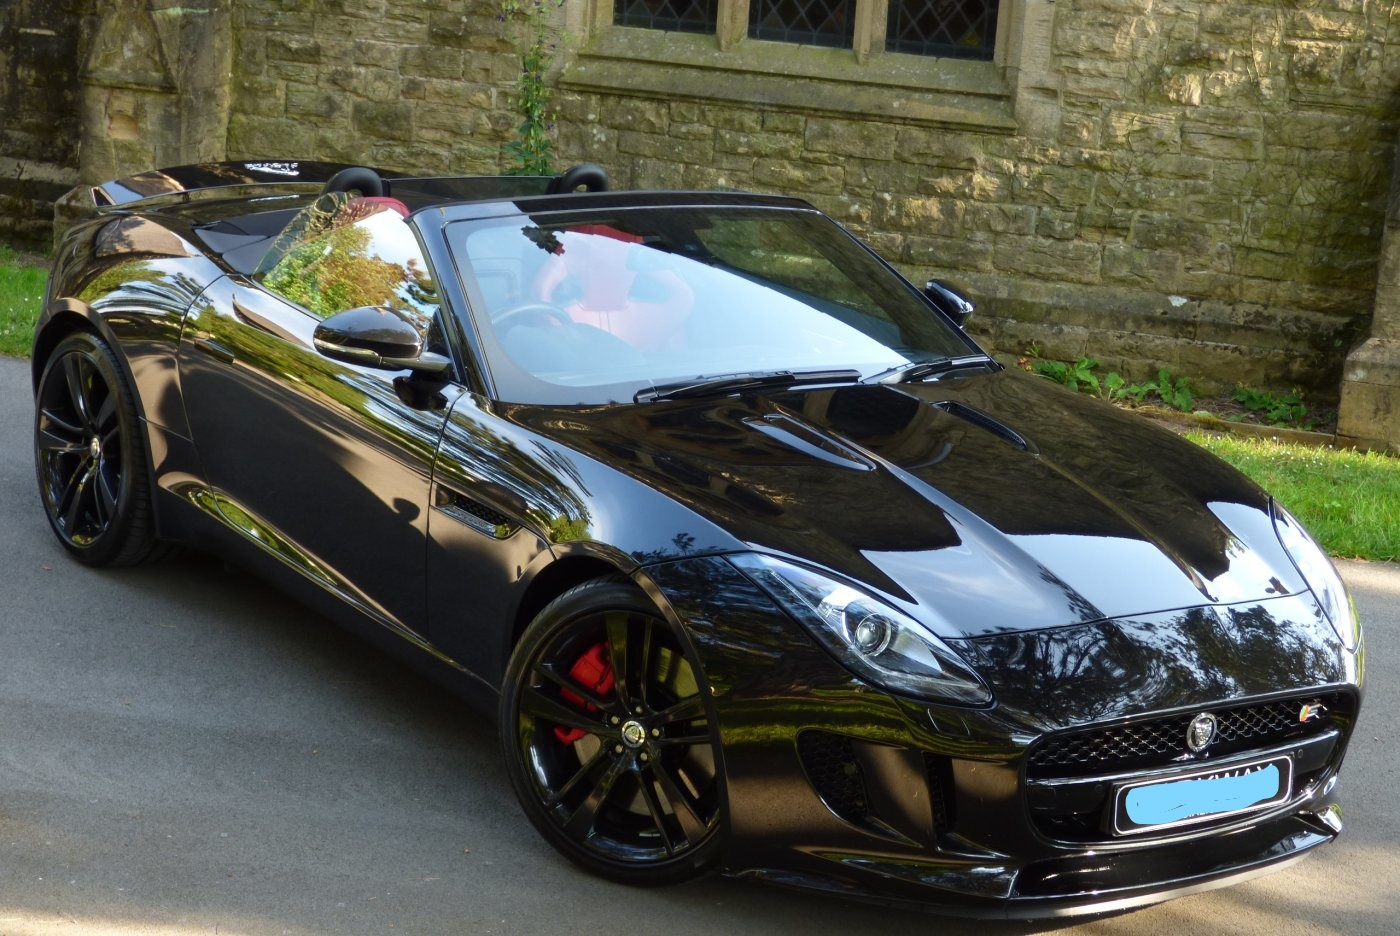 zoom_JAGUAR_F_TYPE_3.0_S_V6_CONVERTIBLE_LI.jpg